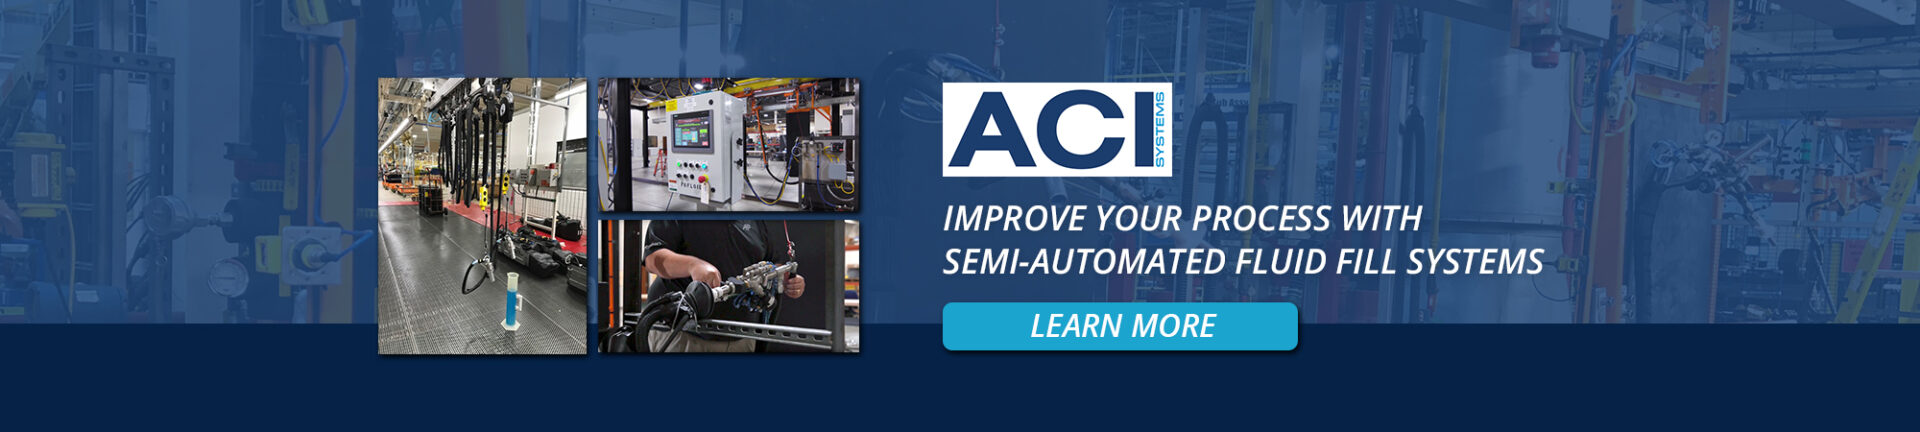 Improve your Process with Semi-Automated Fluid Fill Systems